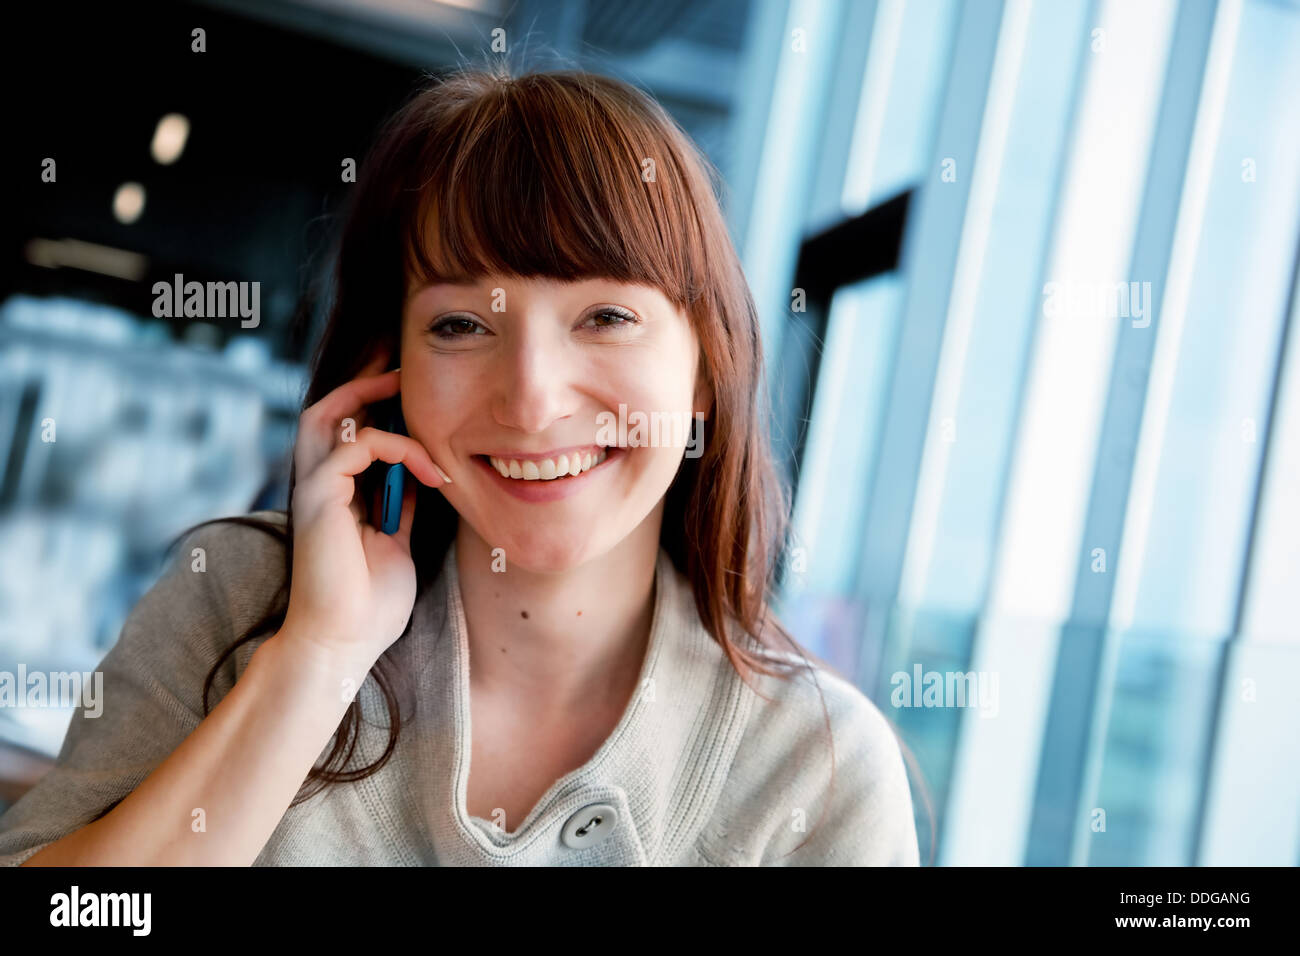 Woman talking on mobile phone and smiling, looking at camera Photo Stock